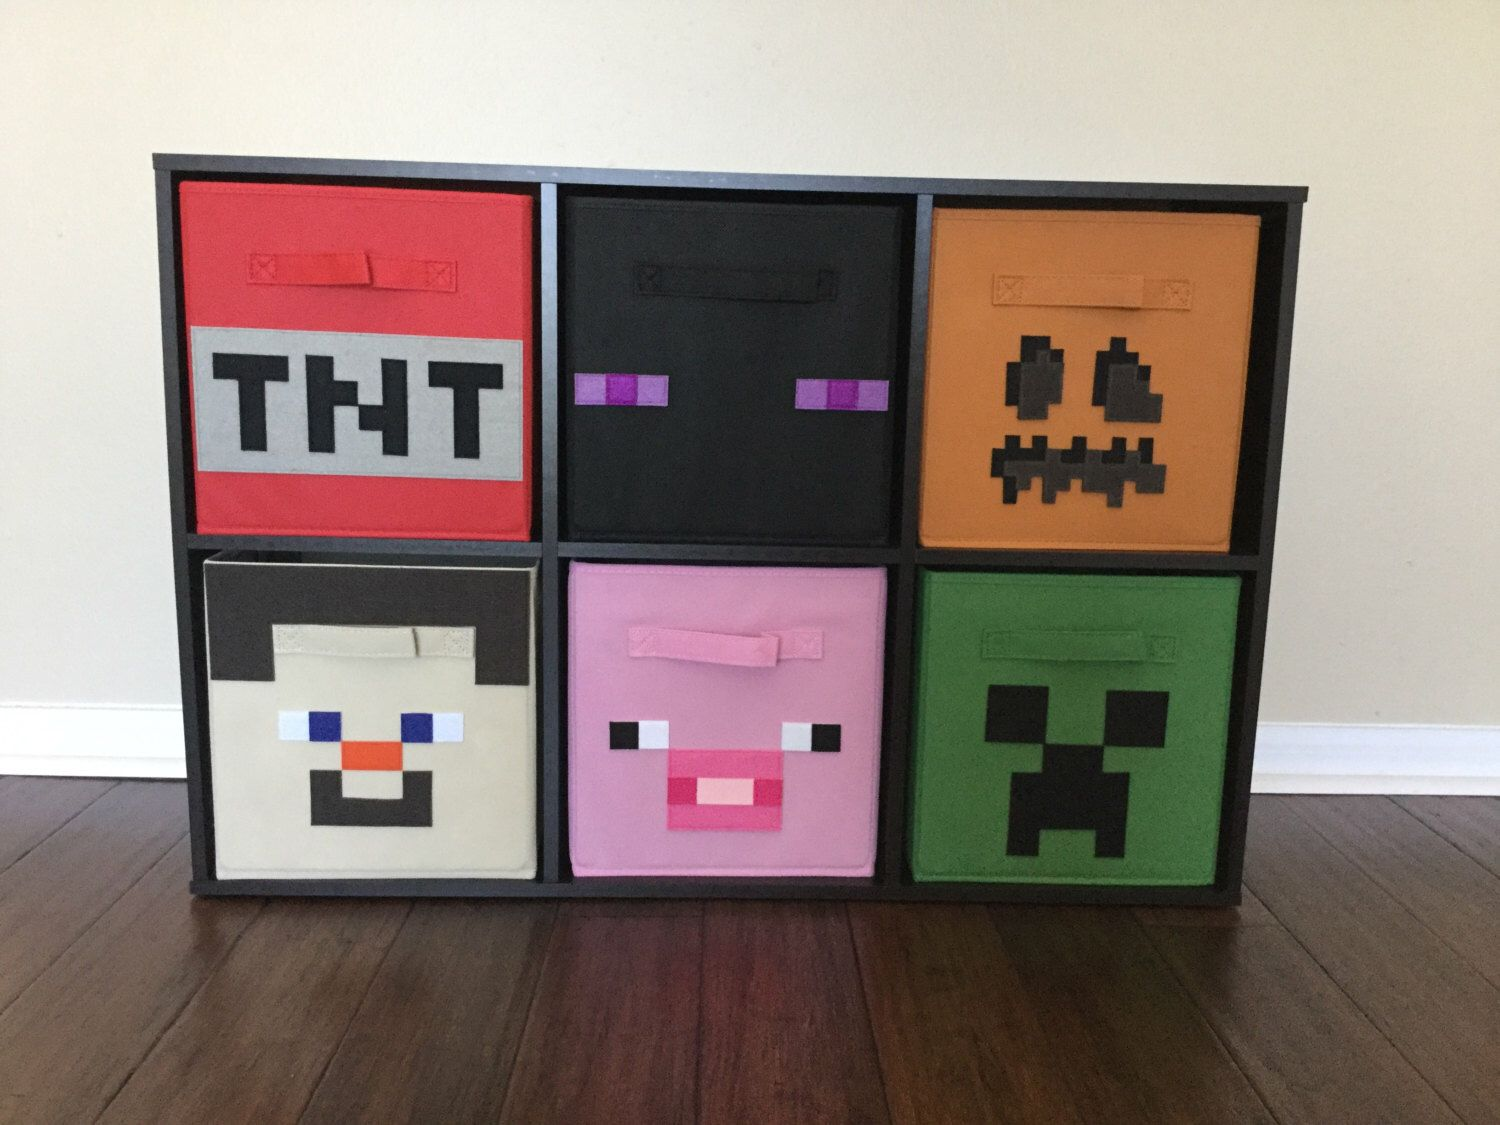 Pin By Dawn Martin On Loft Ideas Pinterest Minecraft Room Three Way Switch In Storage Bin Set Of Cube Boys Bedroom Toy